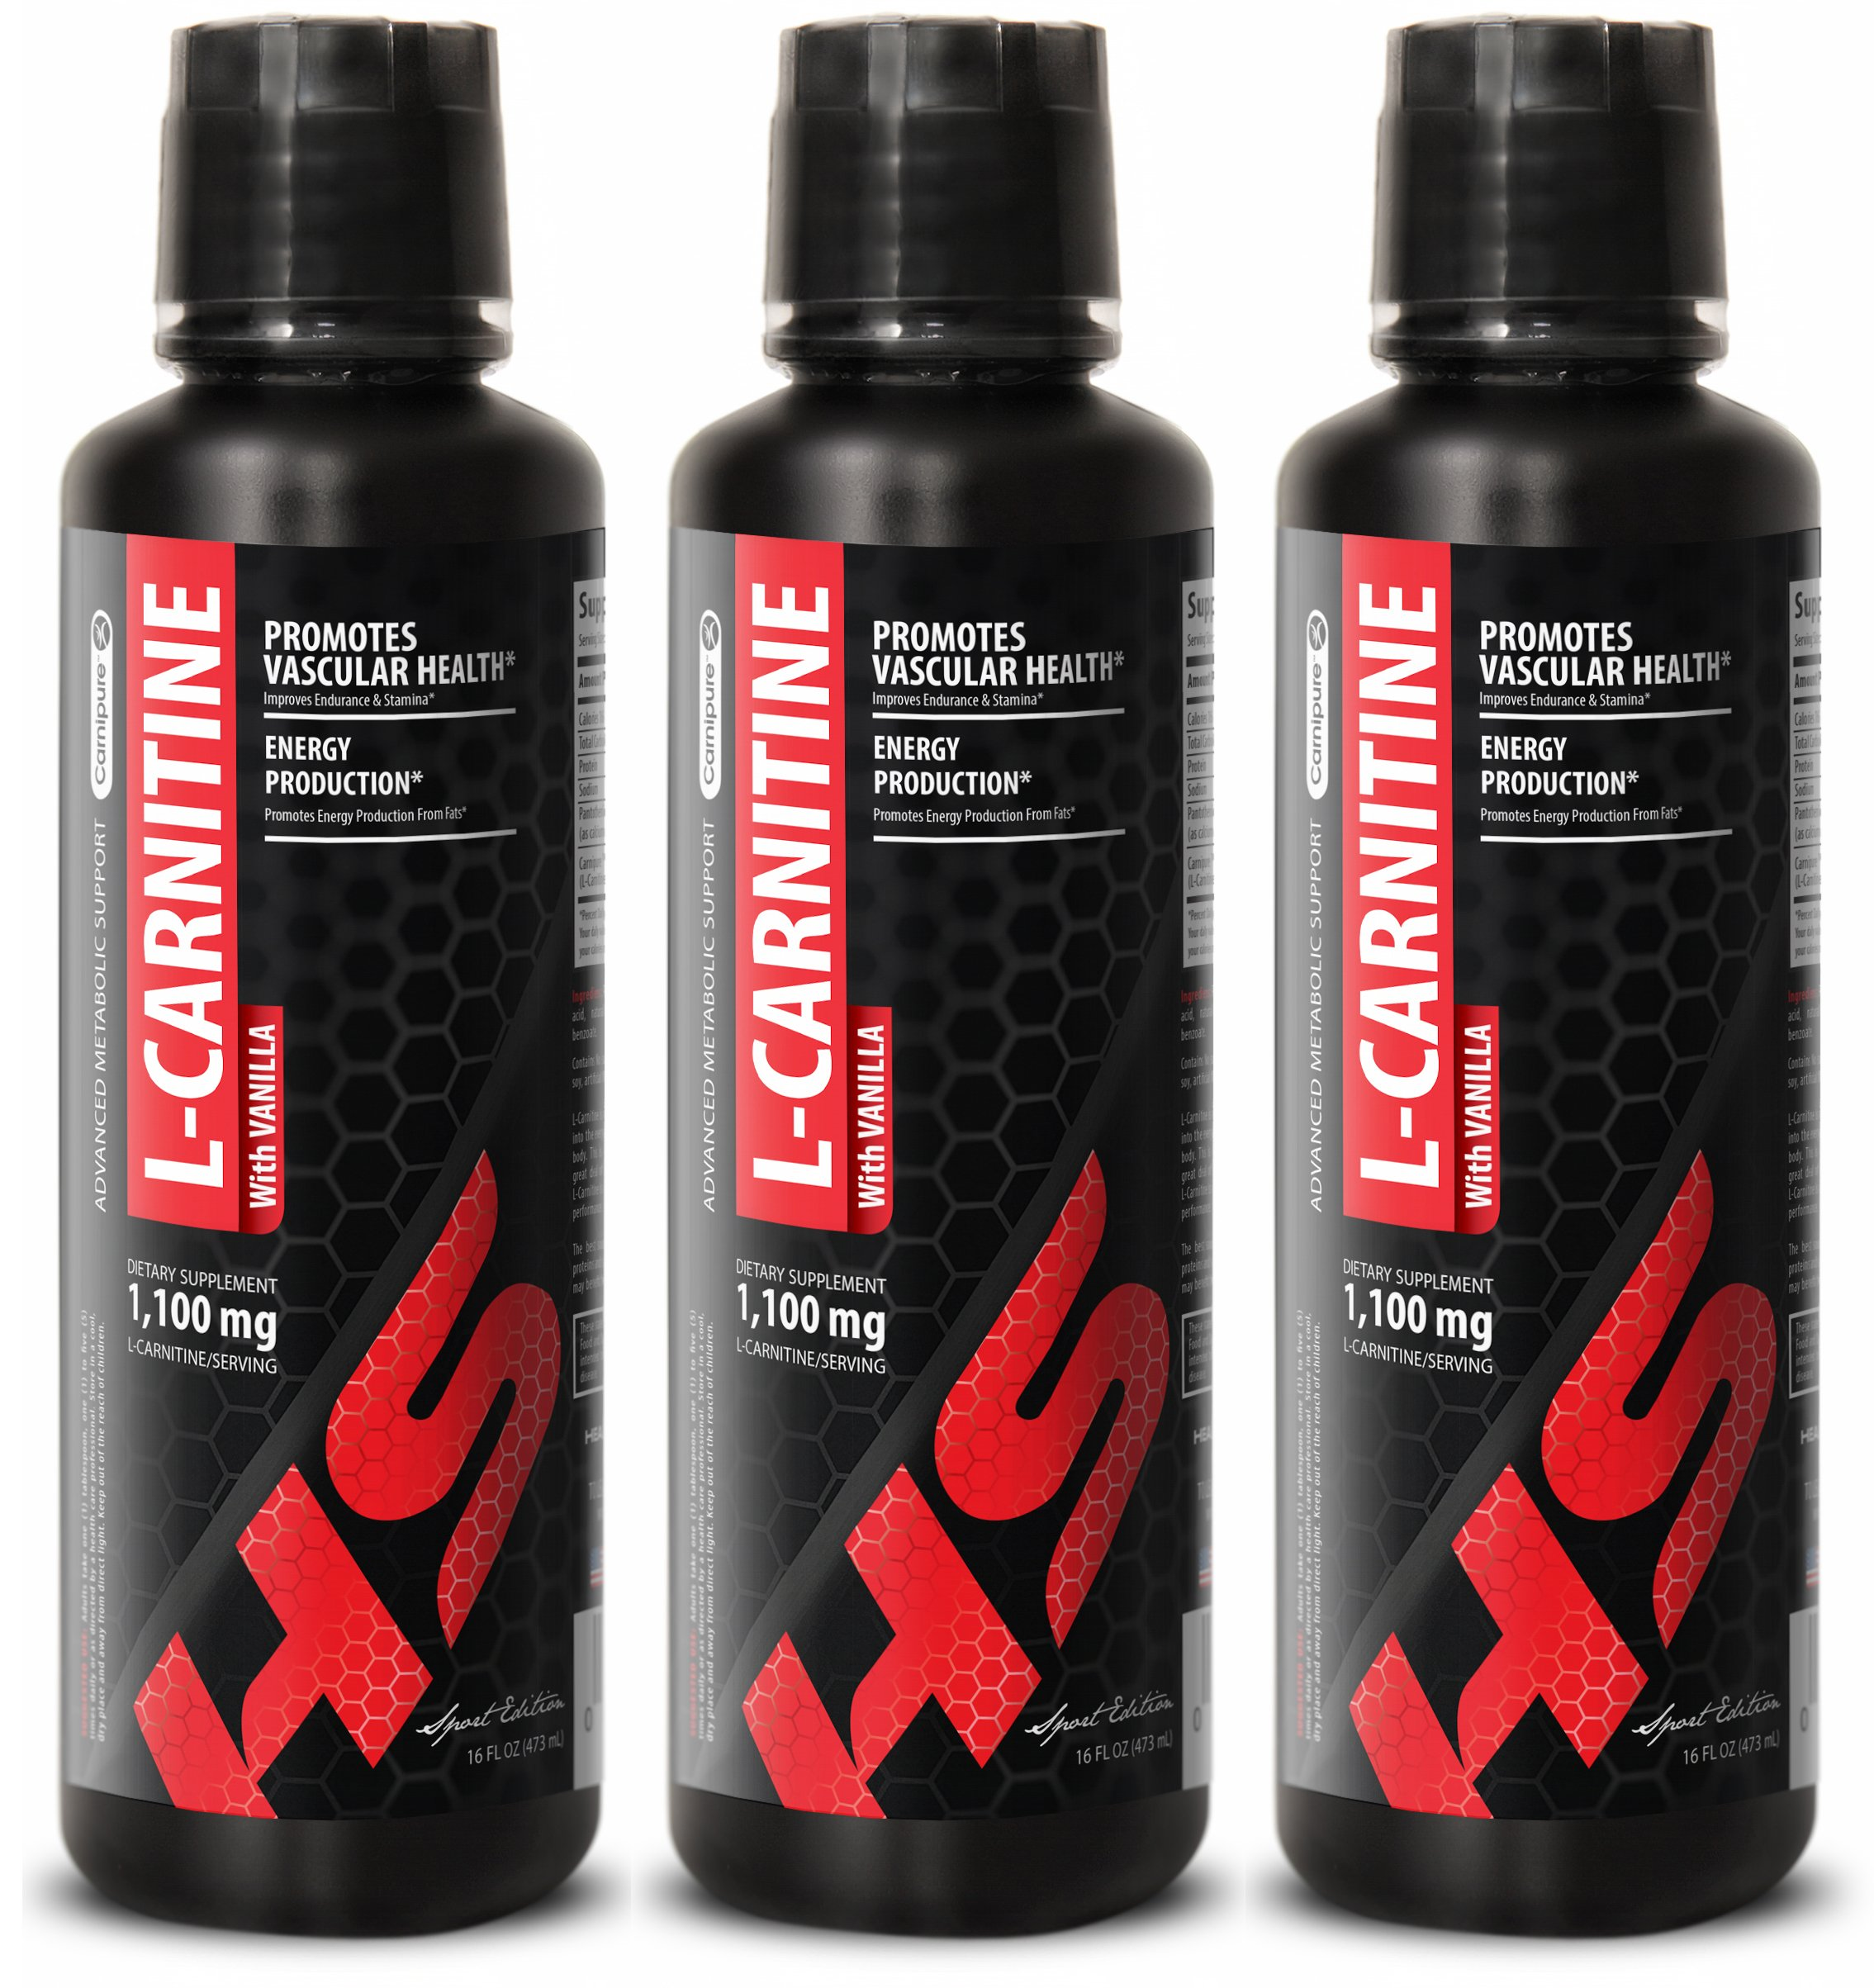 energy supplement drink - L-Carnitine 1,100MG - metabolism liquid - 3 Bottles (48 FL OZ)